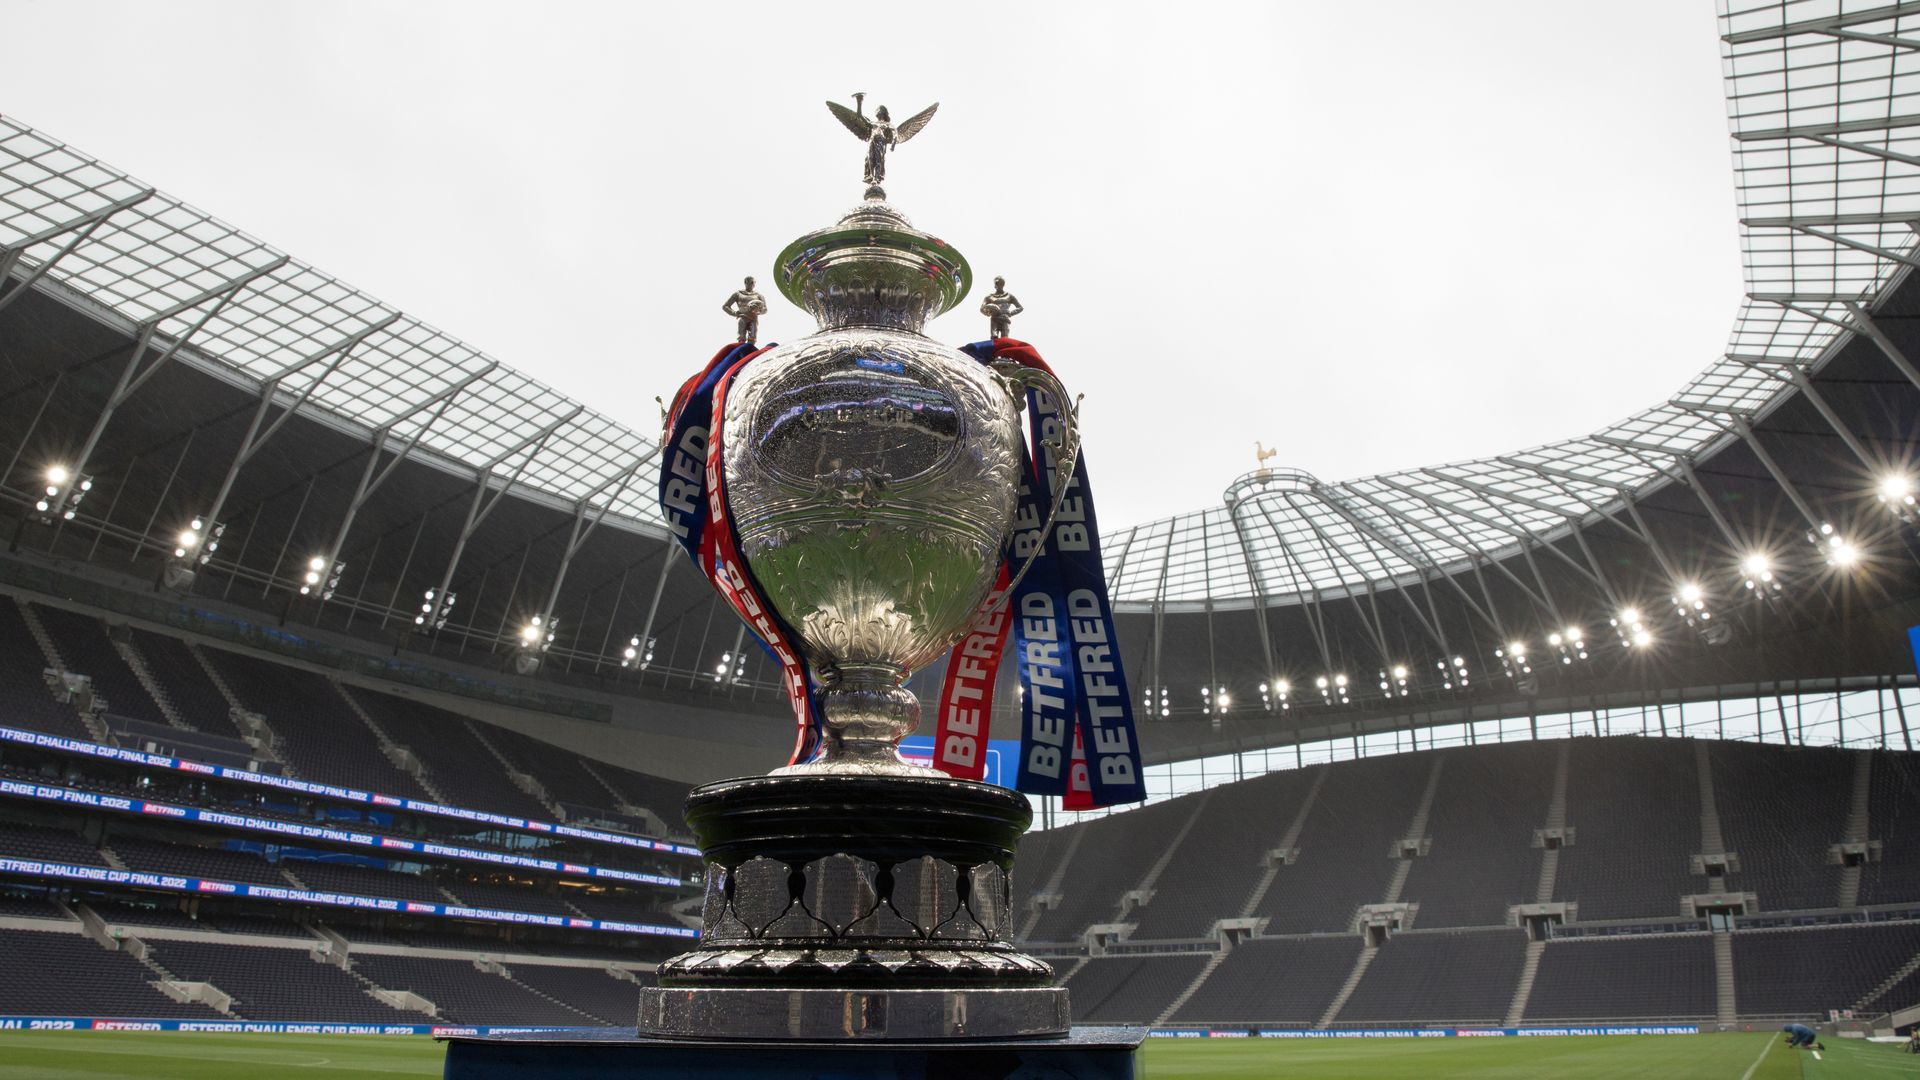 Challenge Cup final to take place at Spurs' stadium in 2022